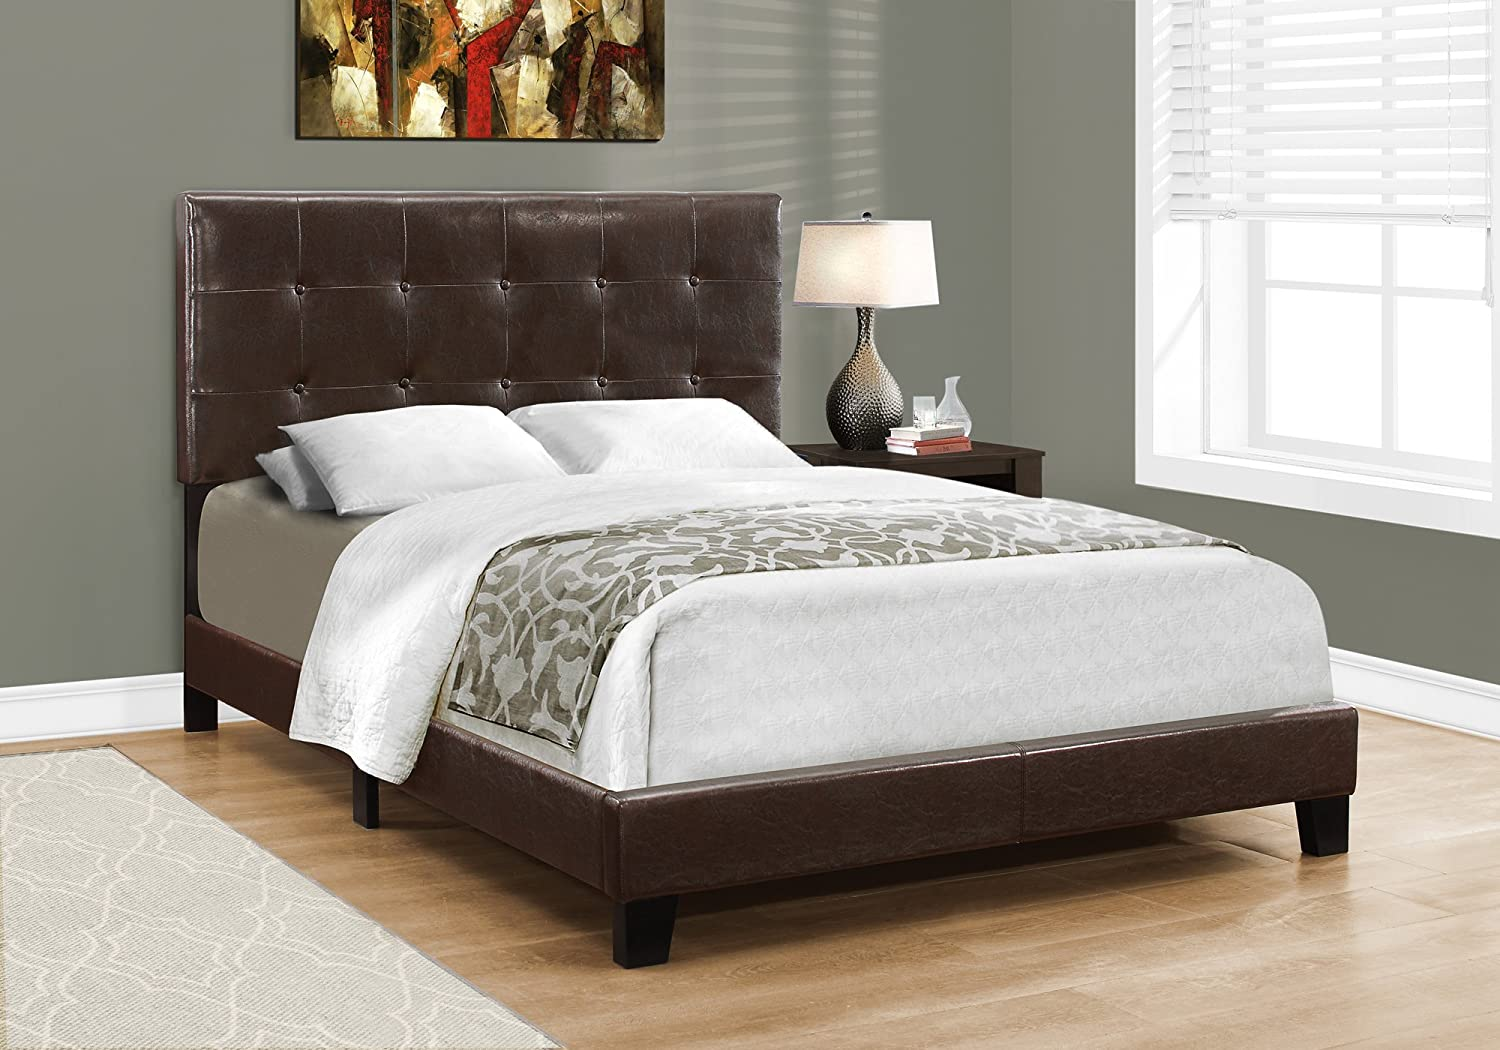 Monarch Specialties Bed Frames, Full, Brown